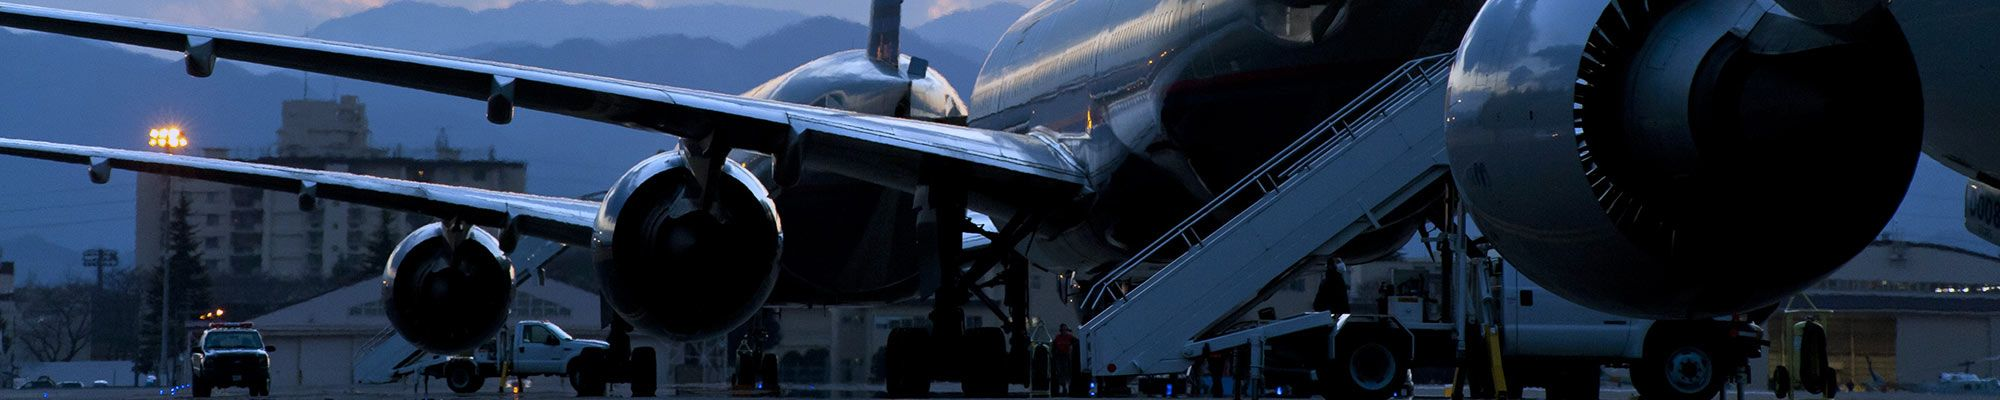 Aviation Weather Certified data collection systems trusted for reliable aviation weather measurements around the world